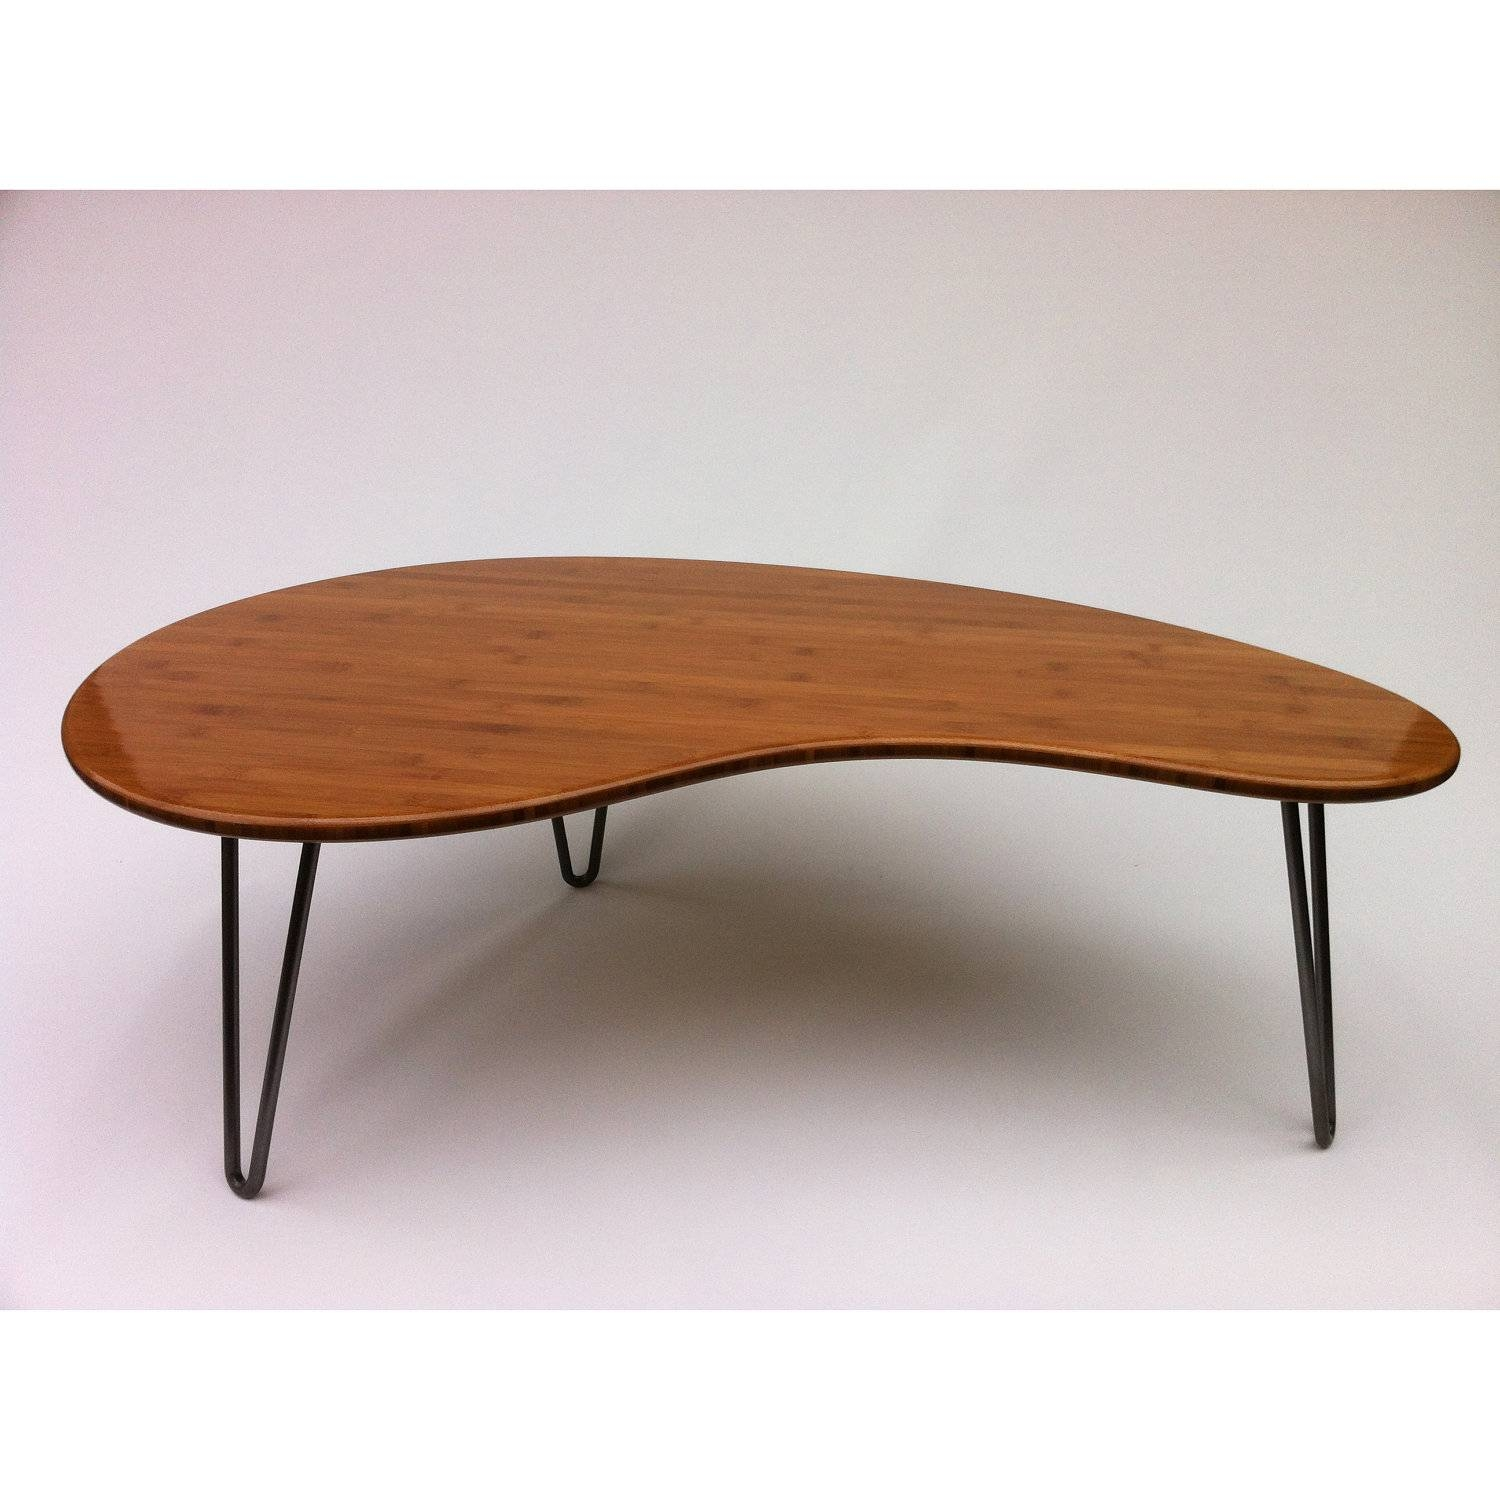 coffee tables wicker table living room end modern pedestal side acrylic awesome black accent round wood dining solid white gloss bamboo queen anne tall narrow thin teal oval floor